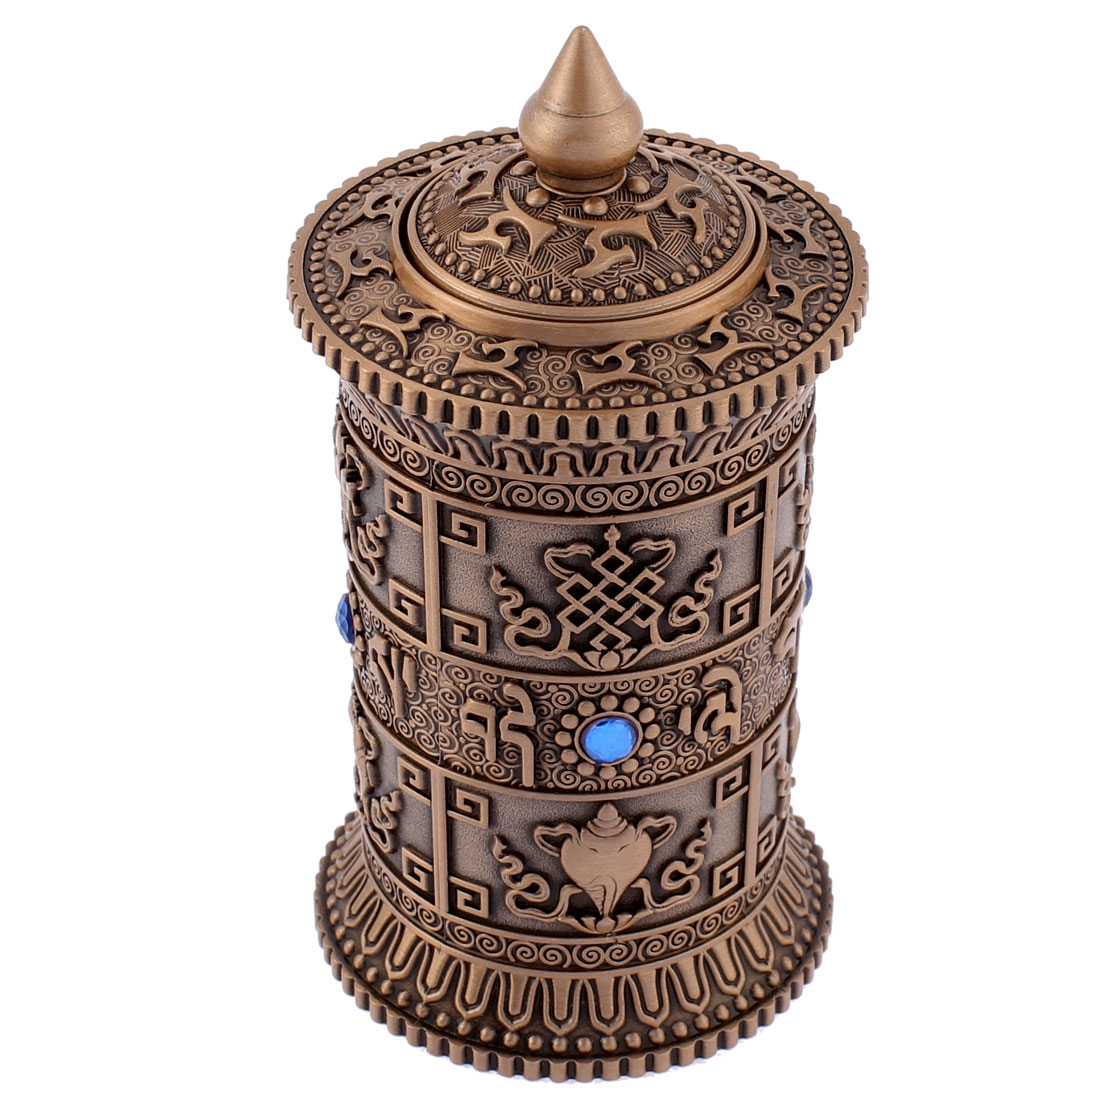 Metal Cylindrical Shaped Rhinestone Inlaid Art Toothpick Holder Copper Tone